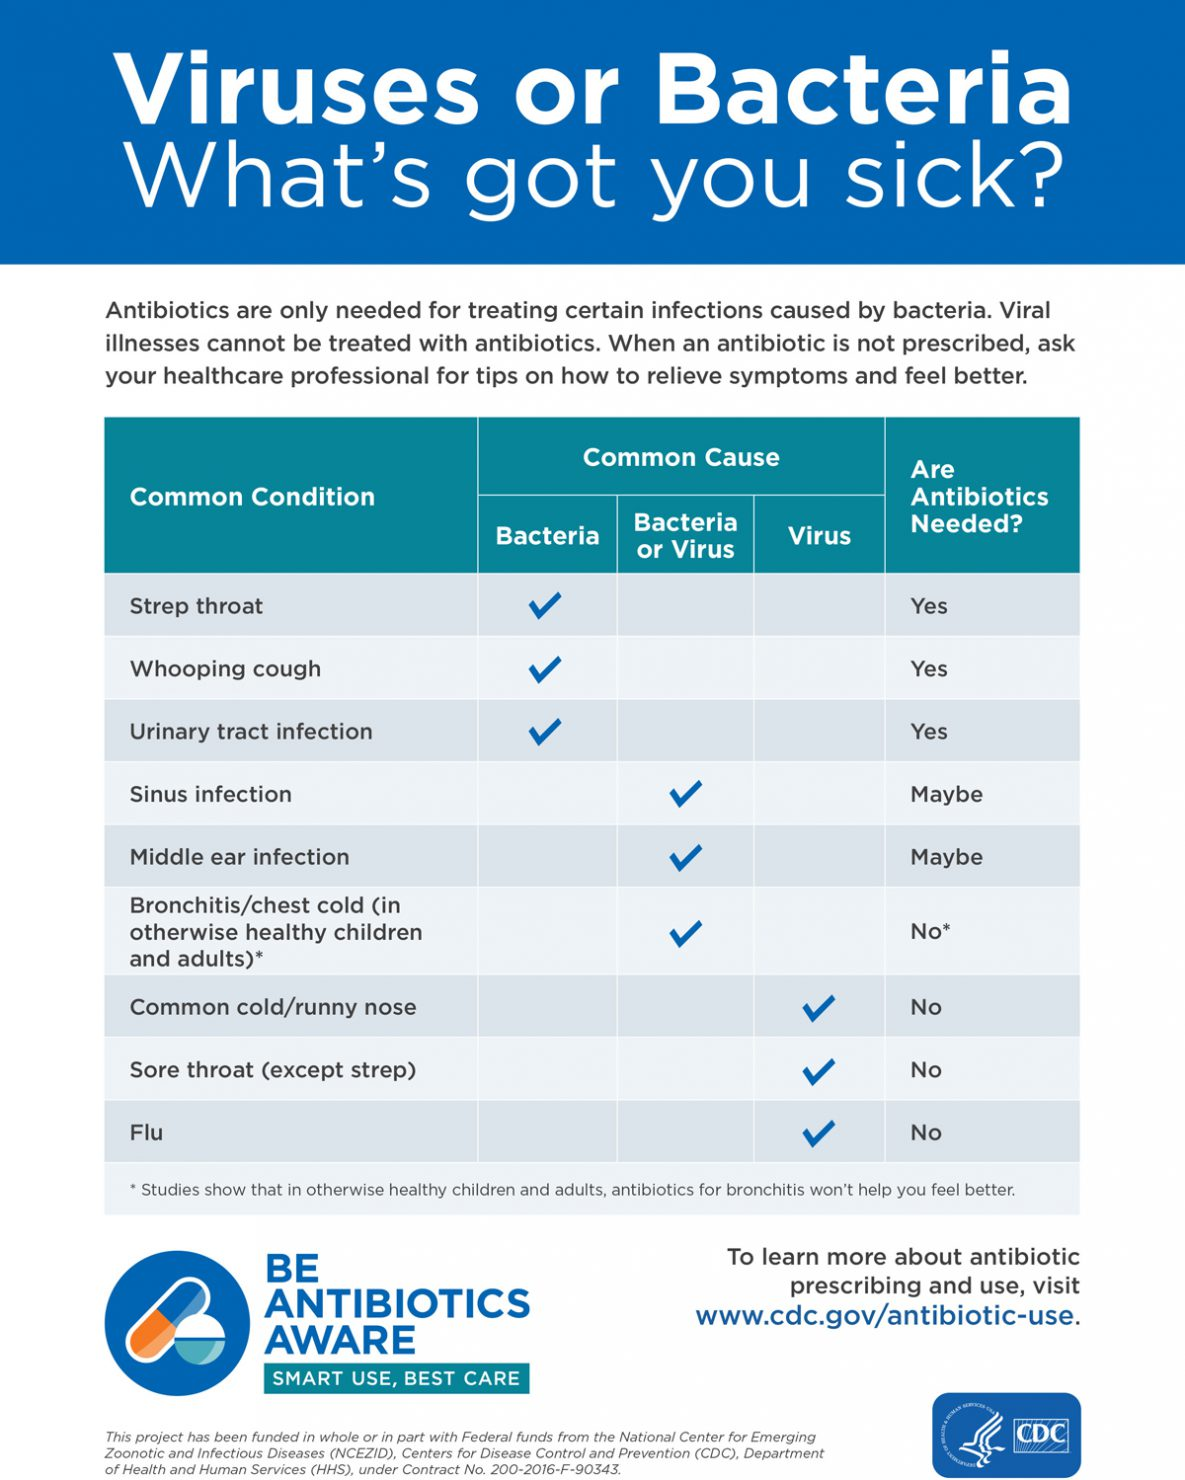 Viruses or bacteria : what's got you sick?